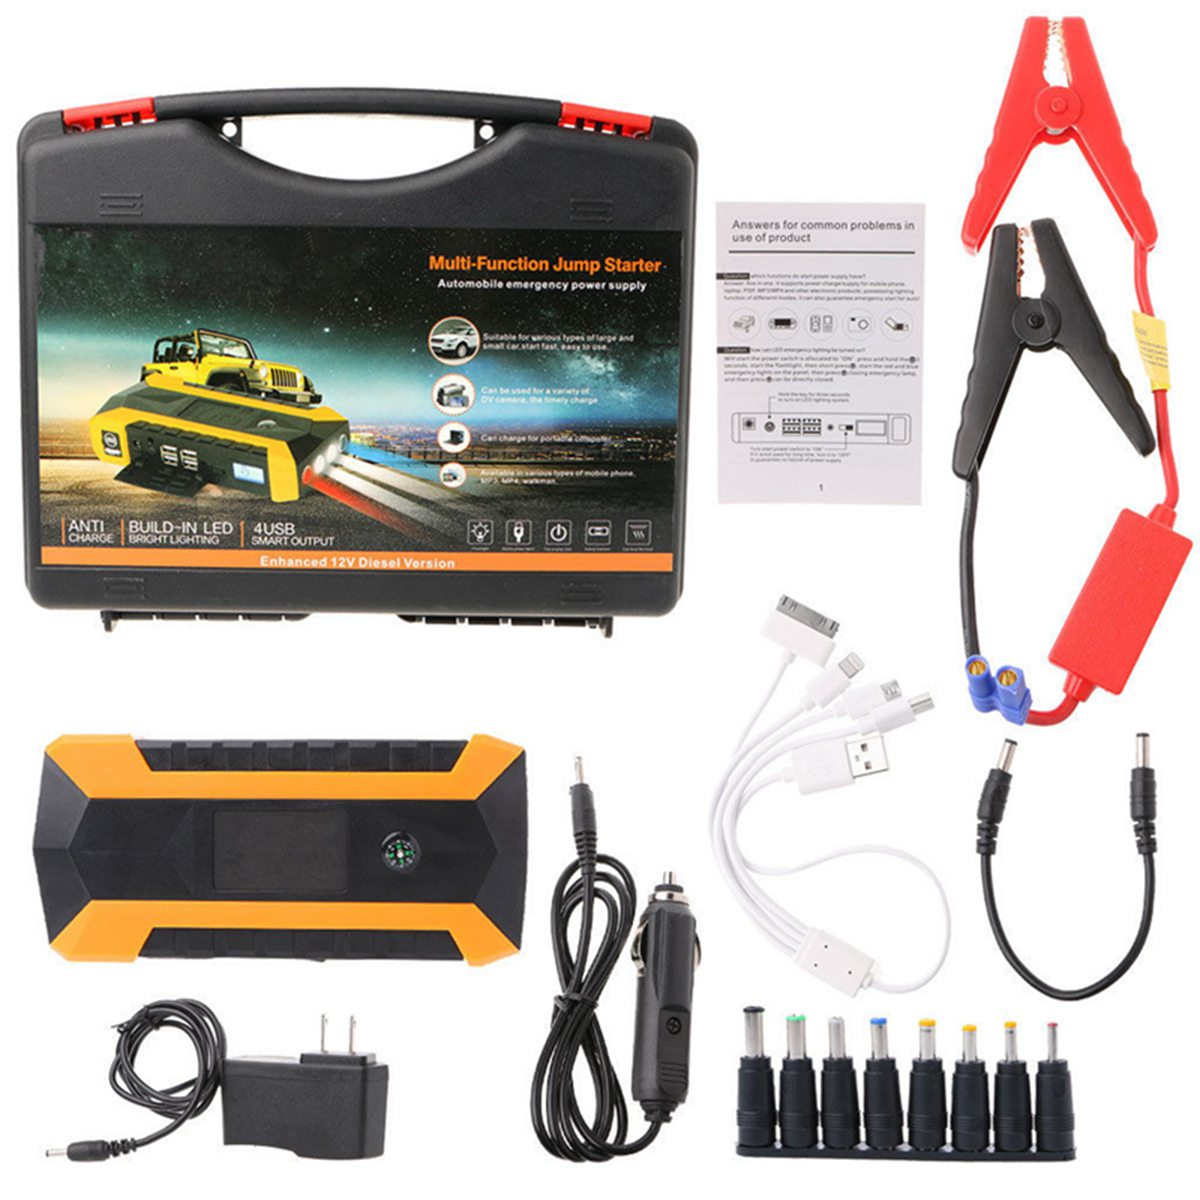 89800mAh LED Emergency Car Jump Starter 12V 4USB Charger Battery Power Bank Portable Car Battery Booster Charger Starting Device car jump starter emergency 69800mah 12v starting device 4usb sos light mobile power bank car charger for car battery booster led